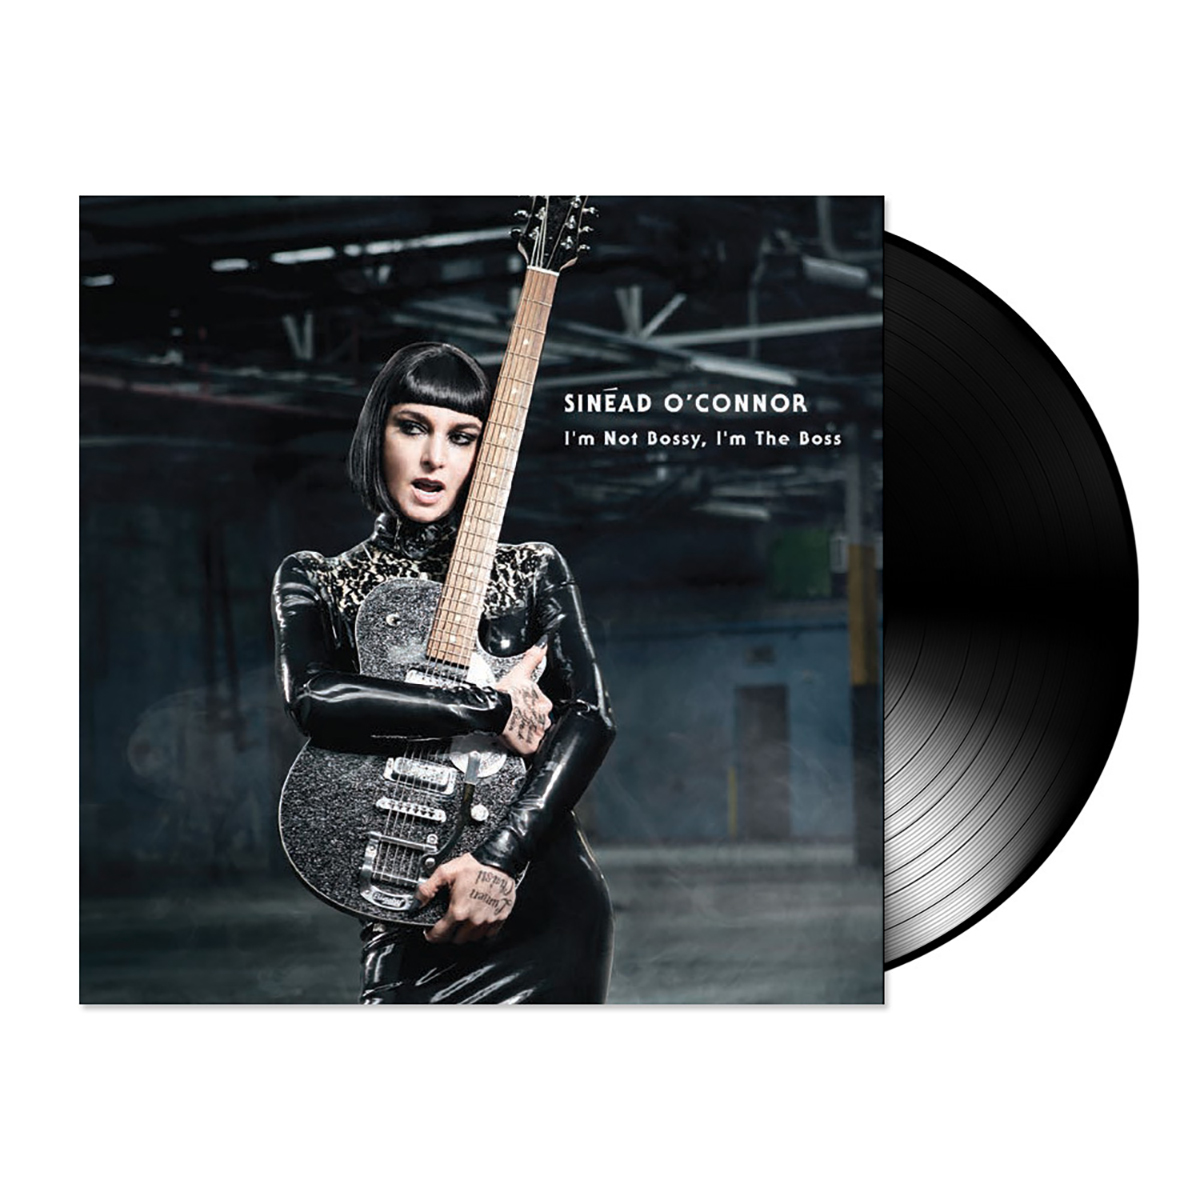 Sinead O'Connor - I'm Not Bossy, I'm The Boss LP